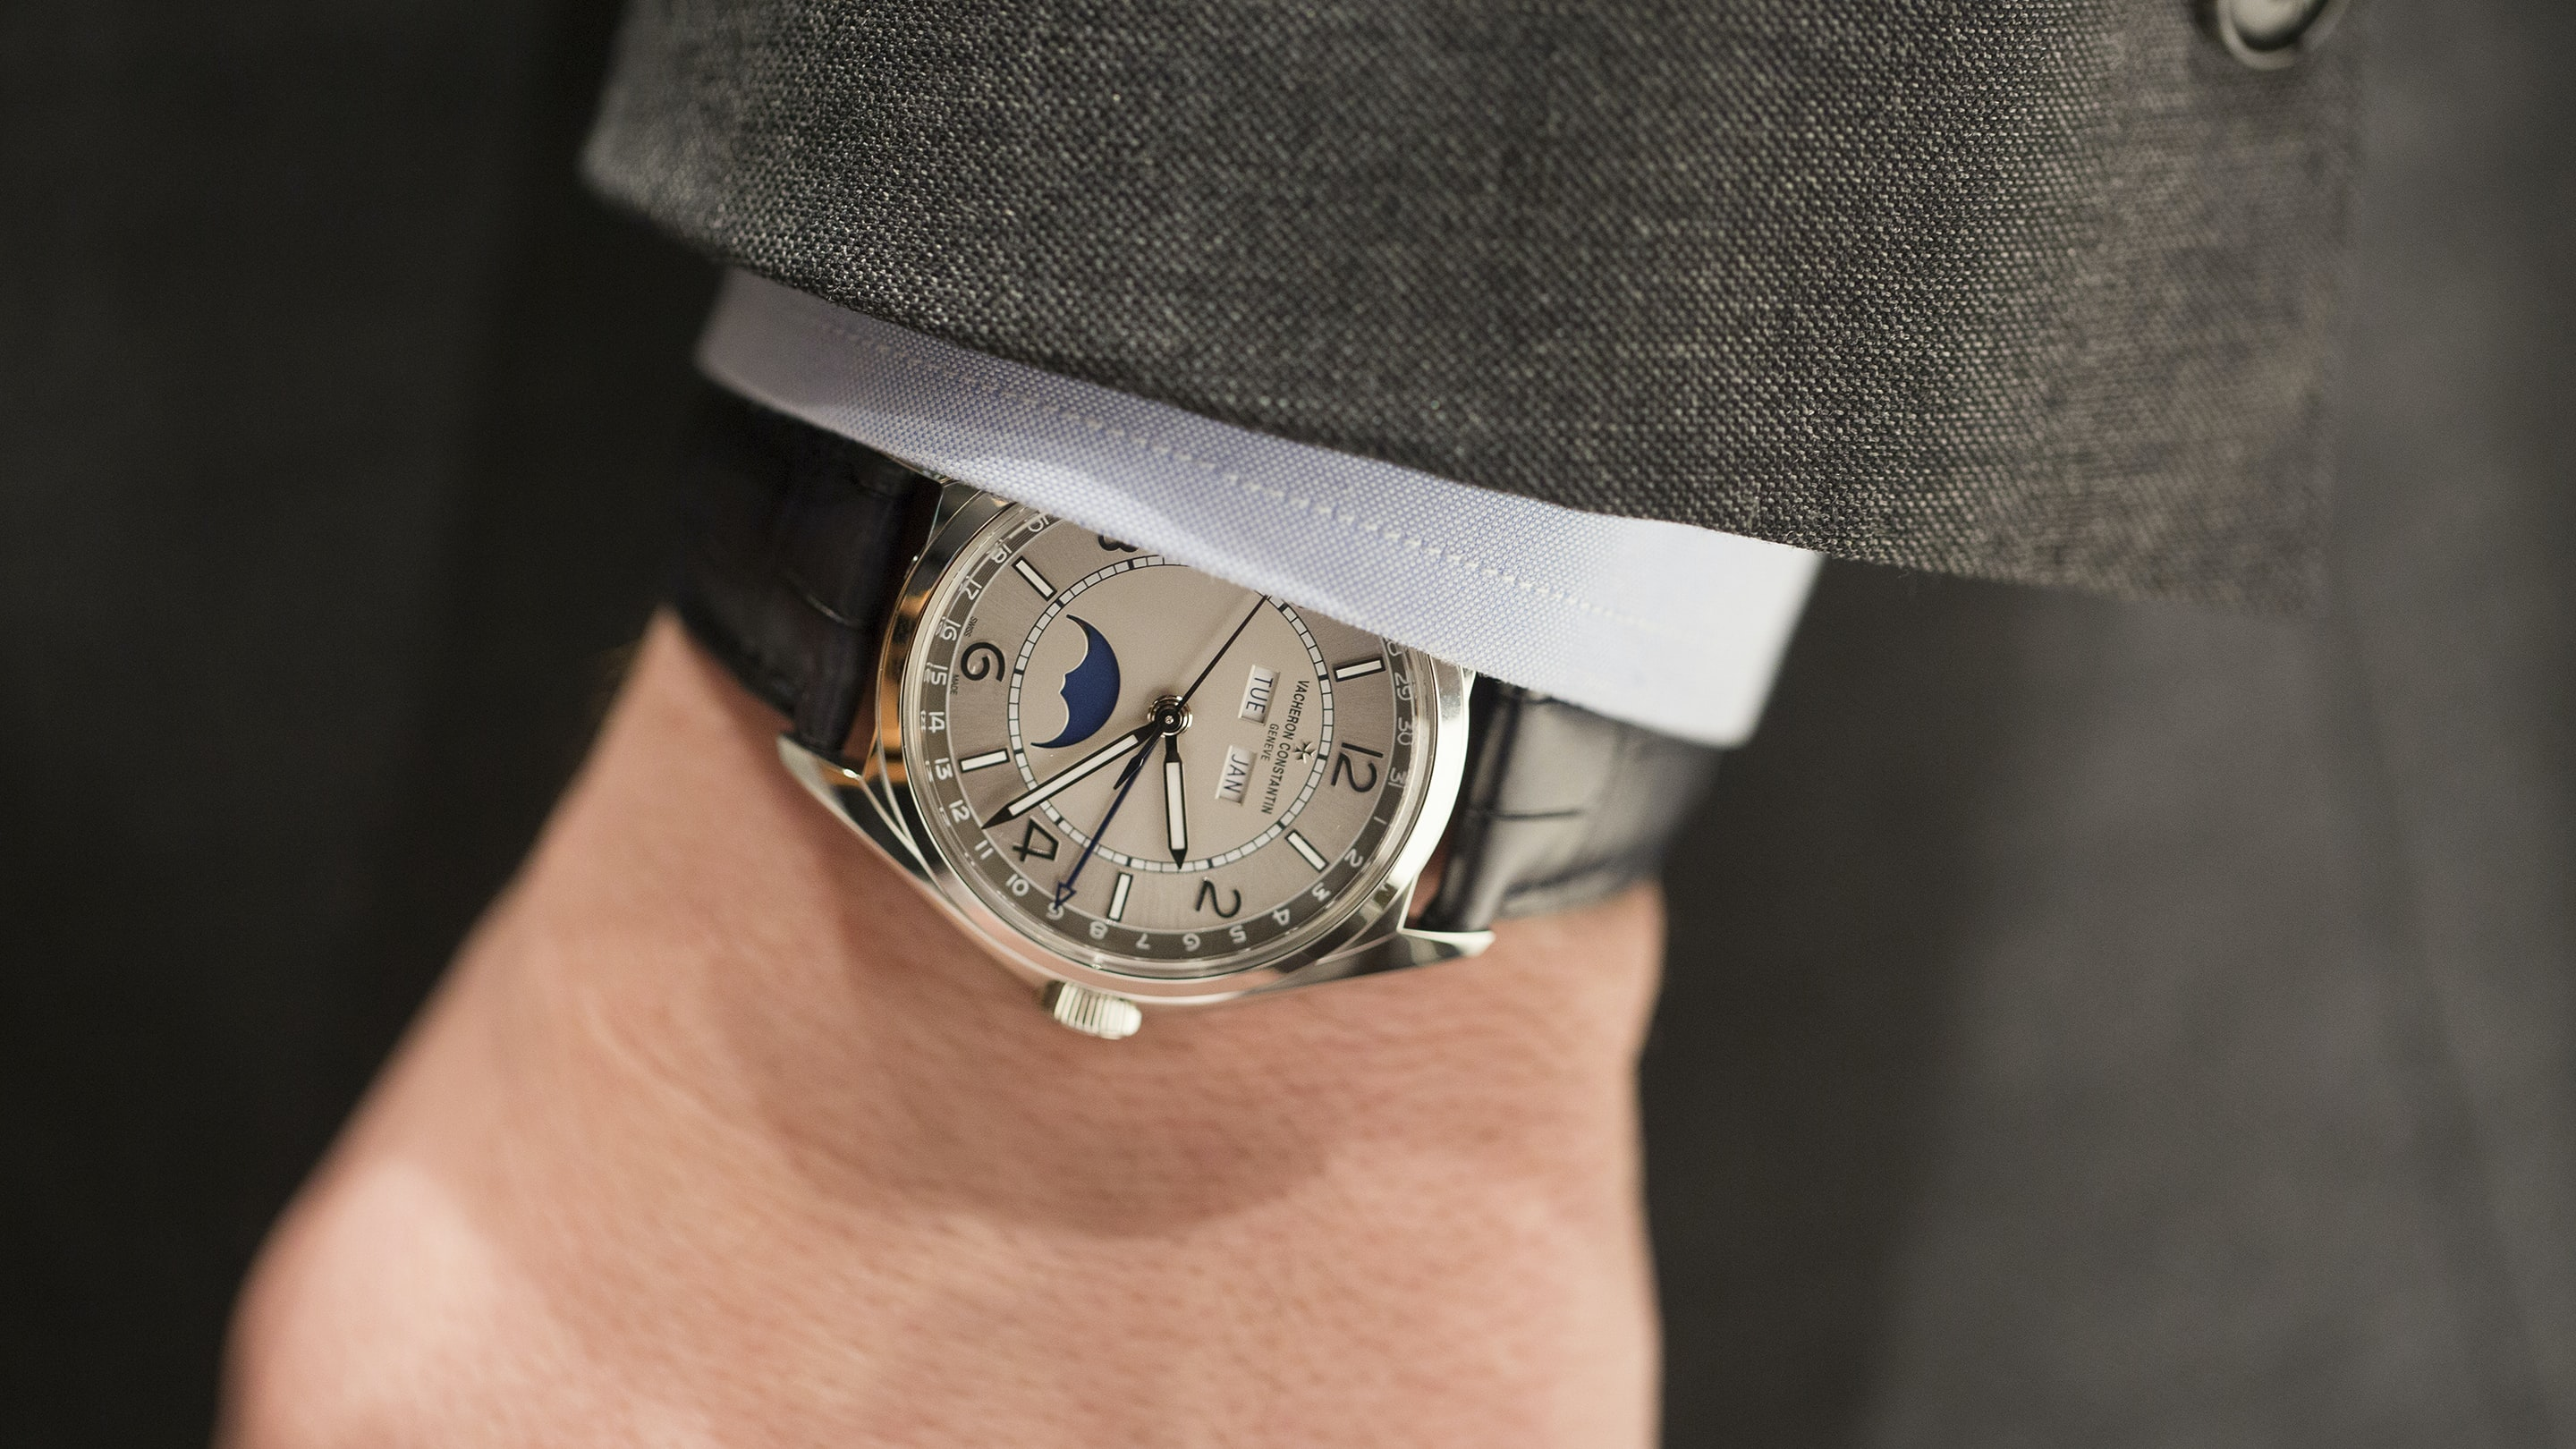 First Take: Jack And Jon Discuss The New Vacheron Constantin Releases At SIHH 2018 (VIDEO)